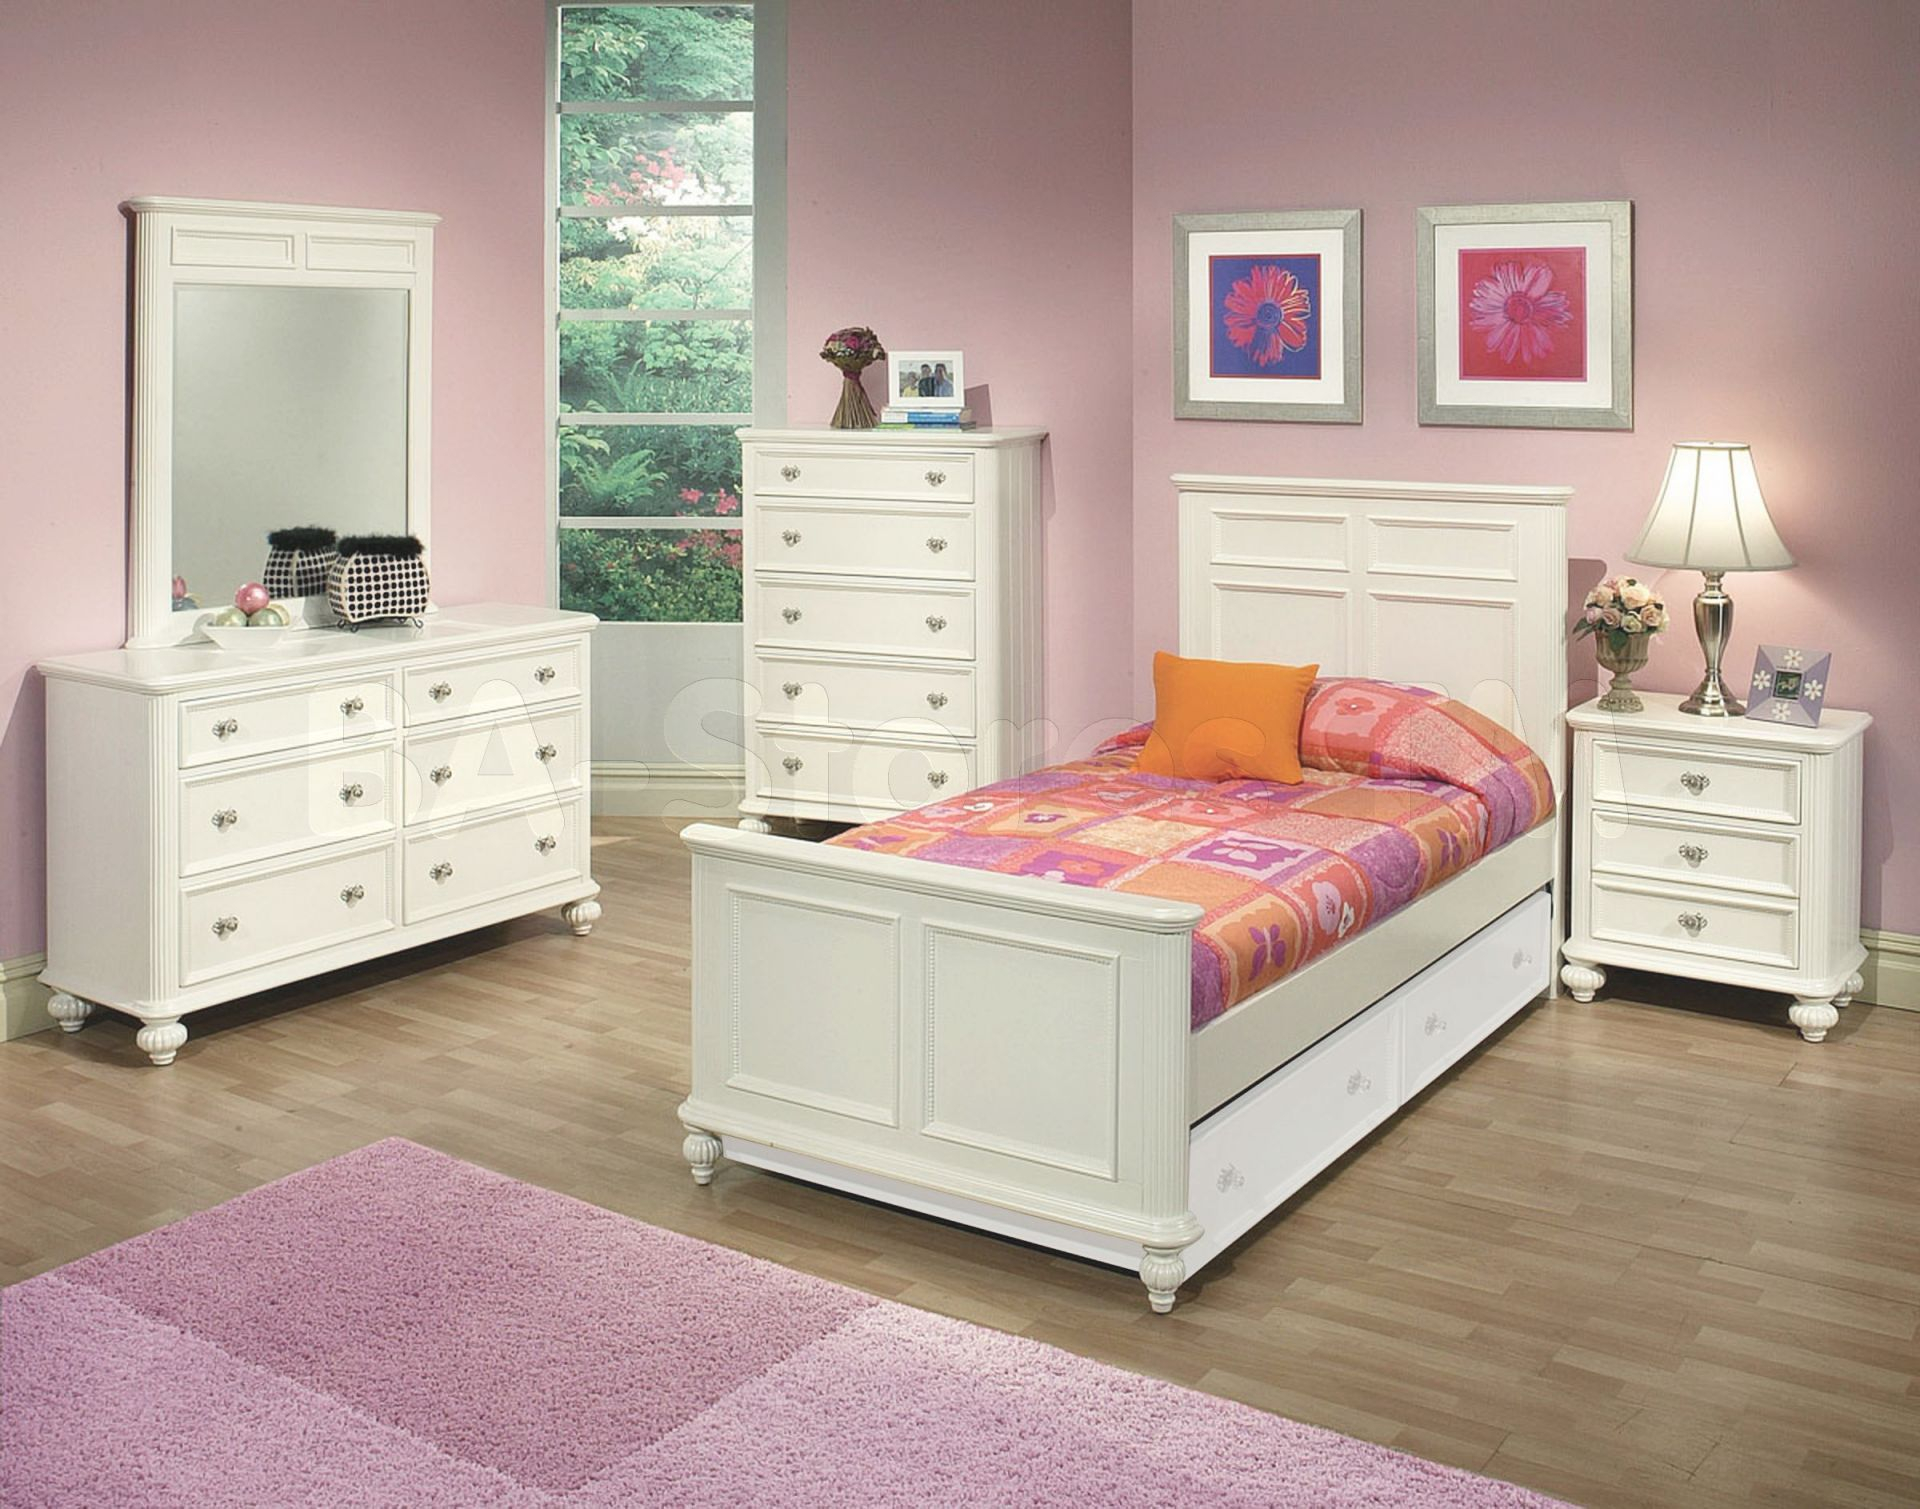 Bedroom Design : Cheap Bunk Beds Bobs Furniture Set Ashley within Beautiful Cheap White Bedroom Furniture Sets